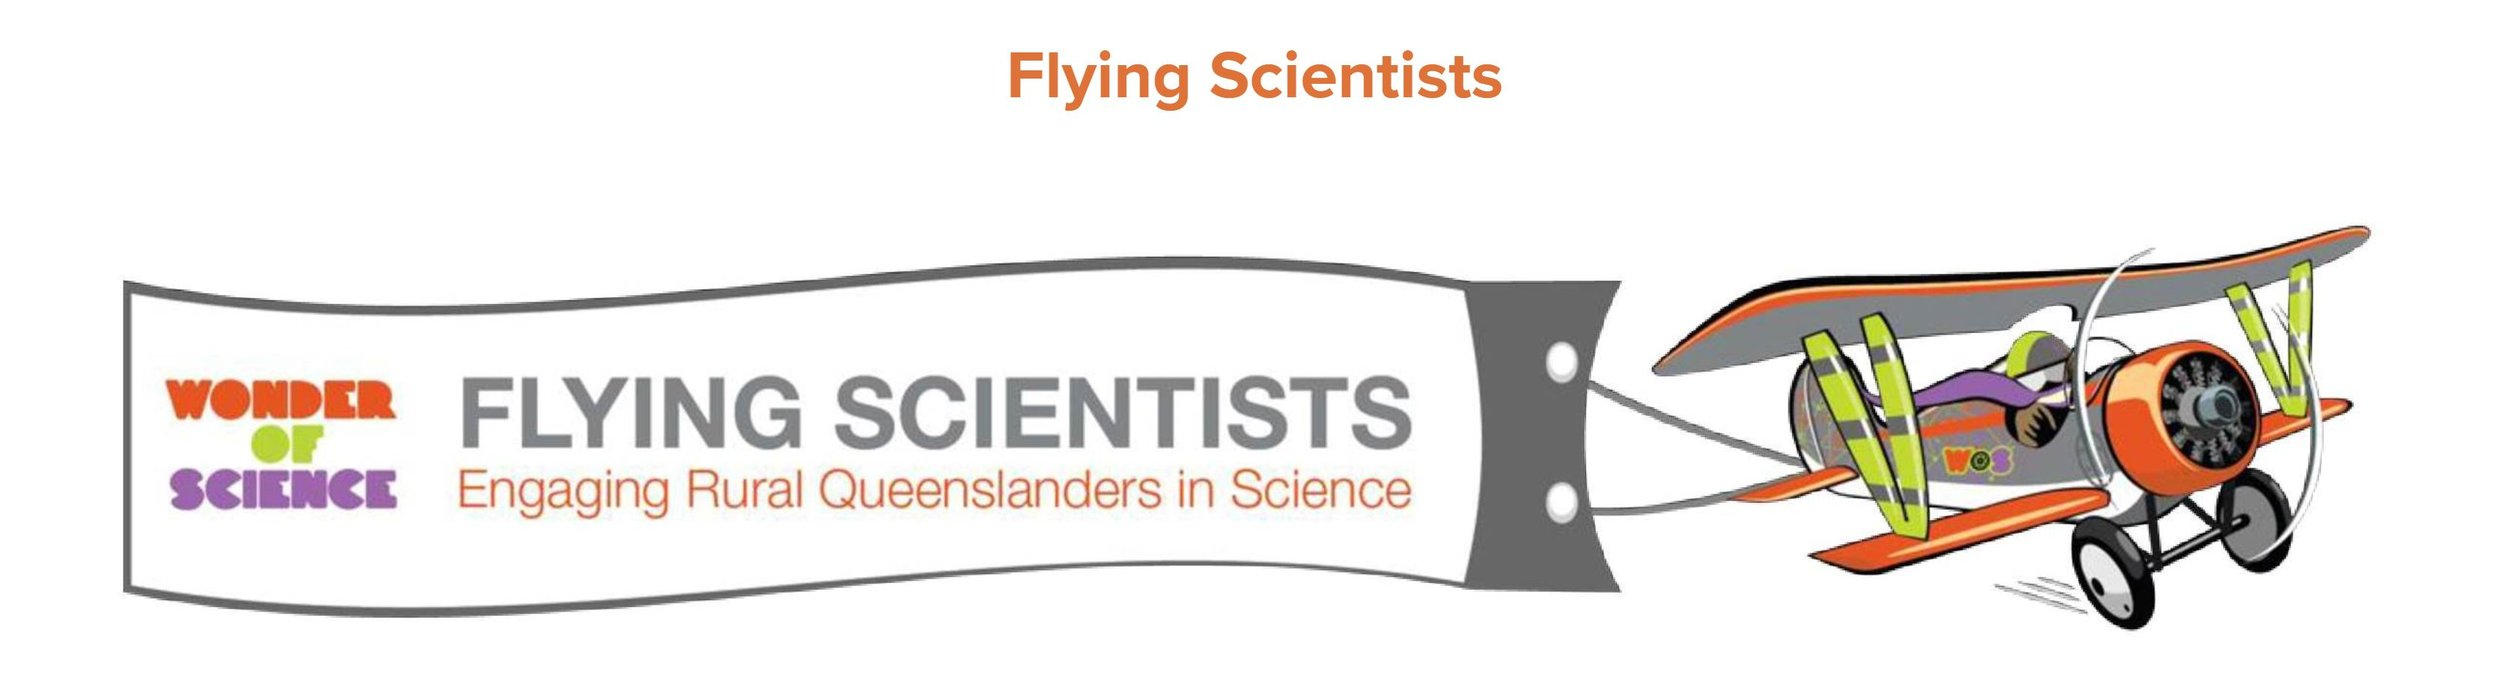 flying scientists.JPG